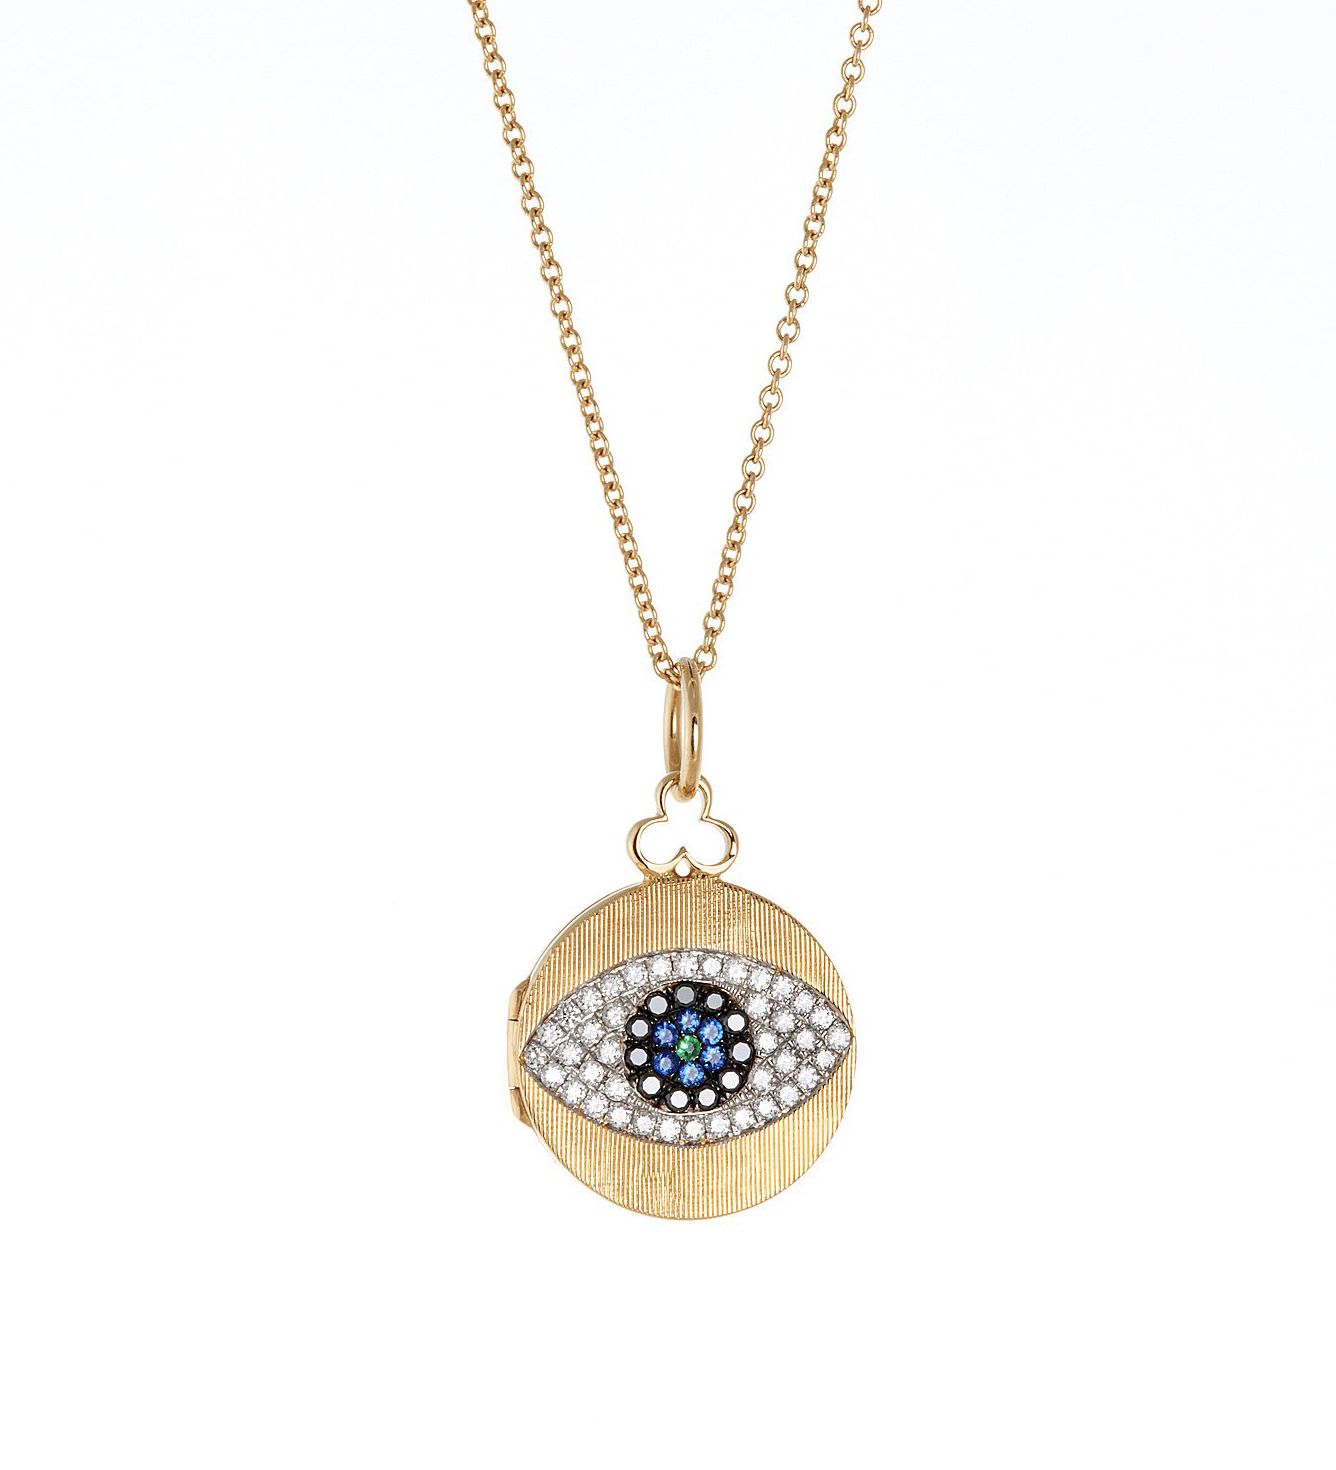 Small Evil Eye Locket in 18K Gold | Florentine